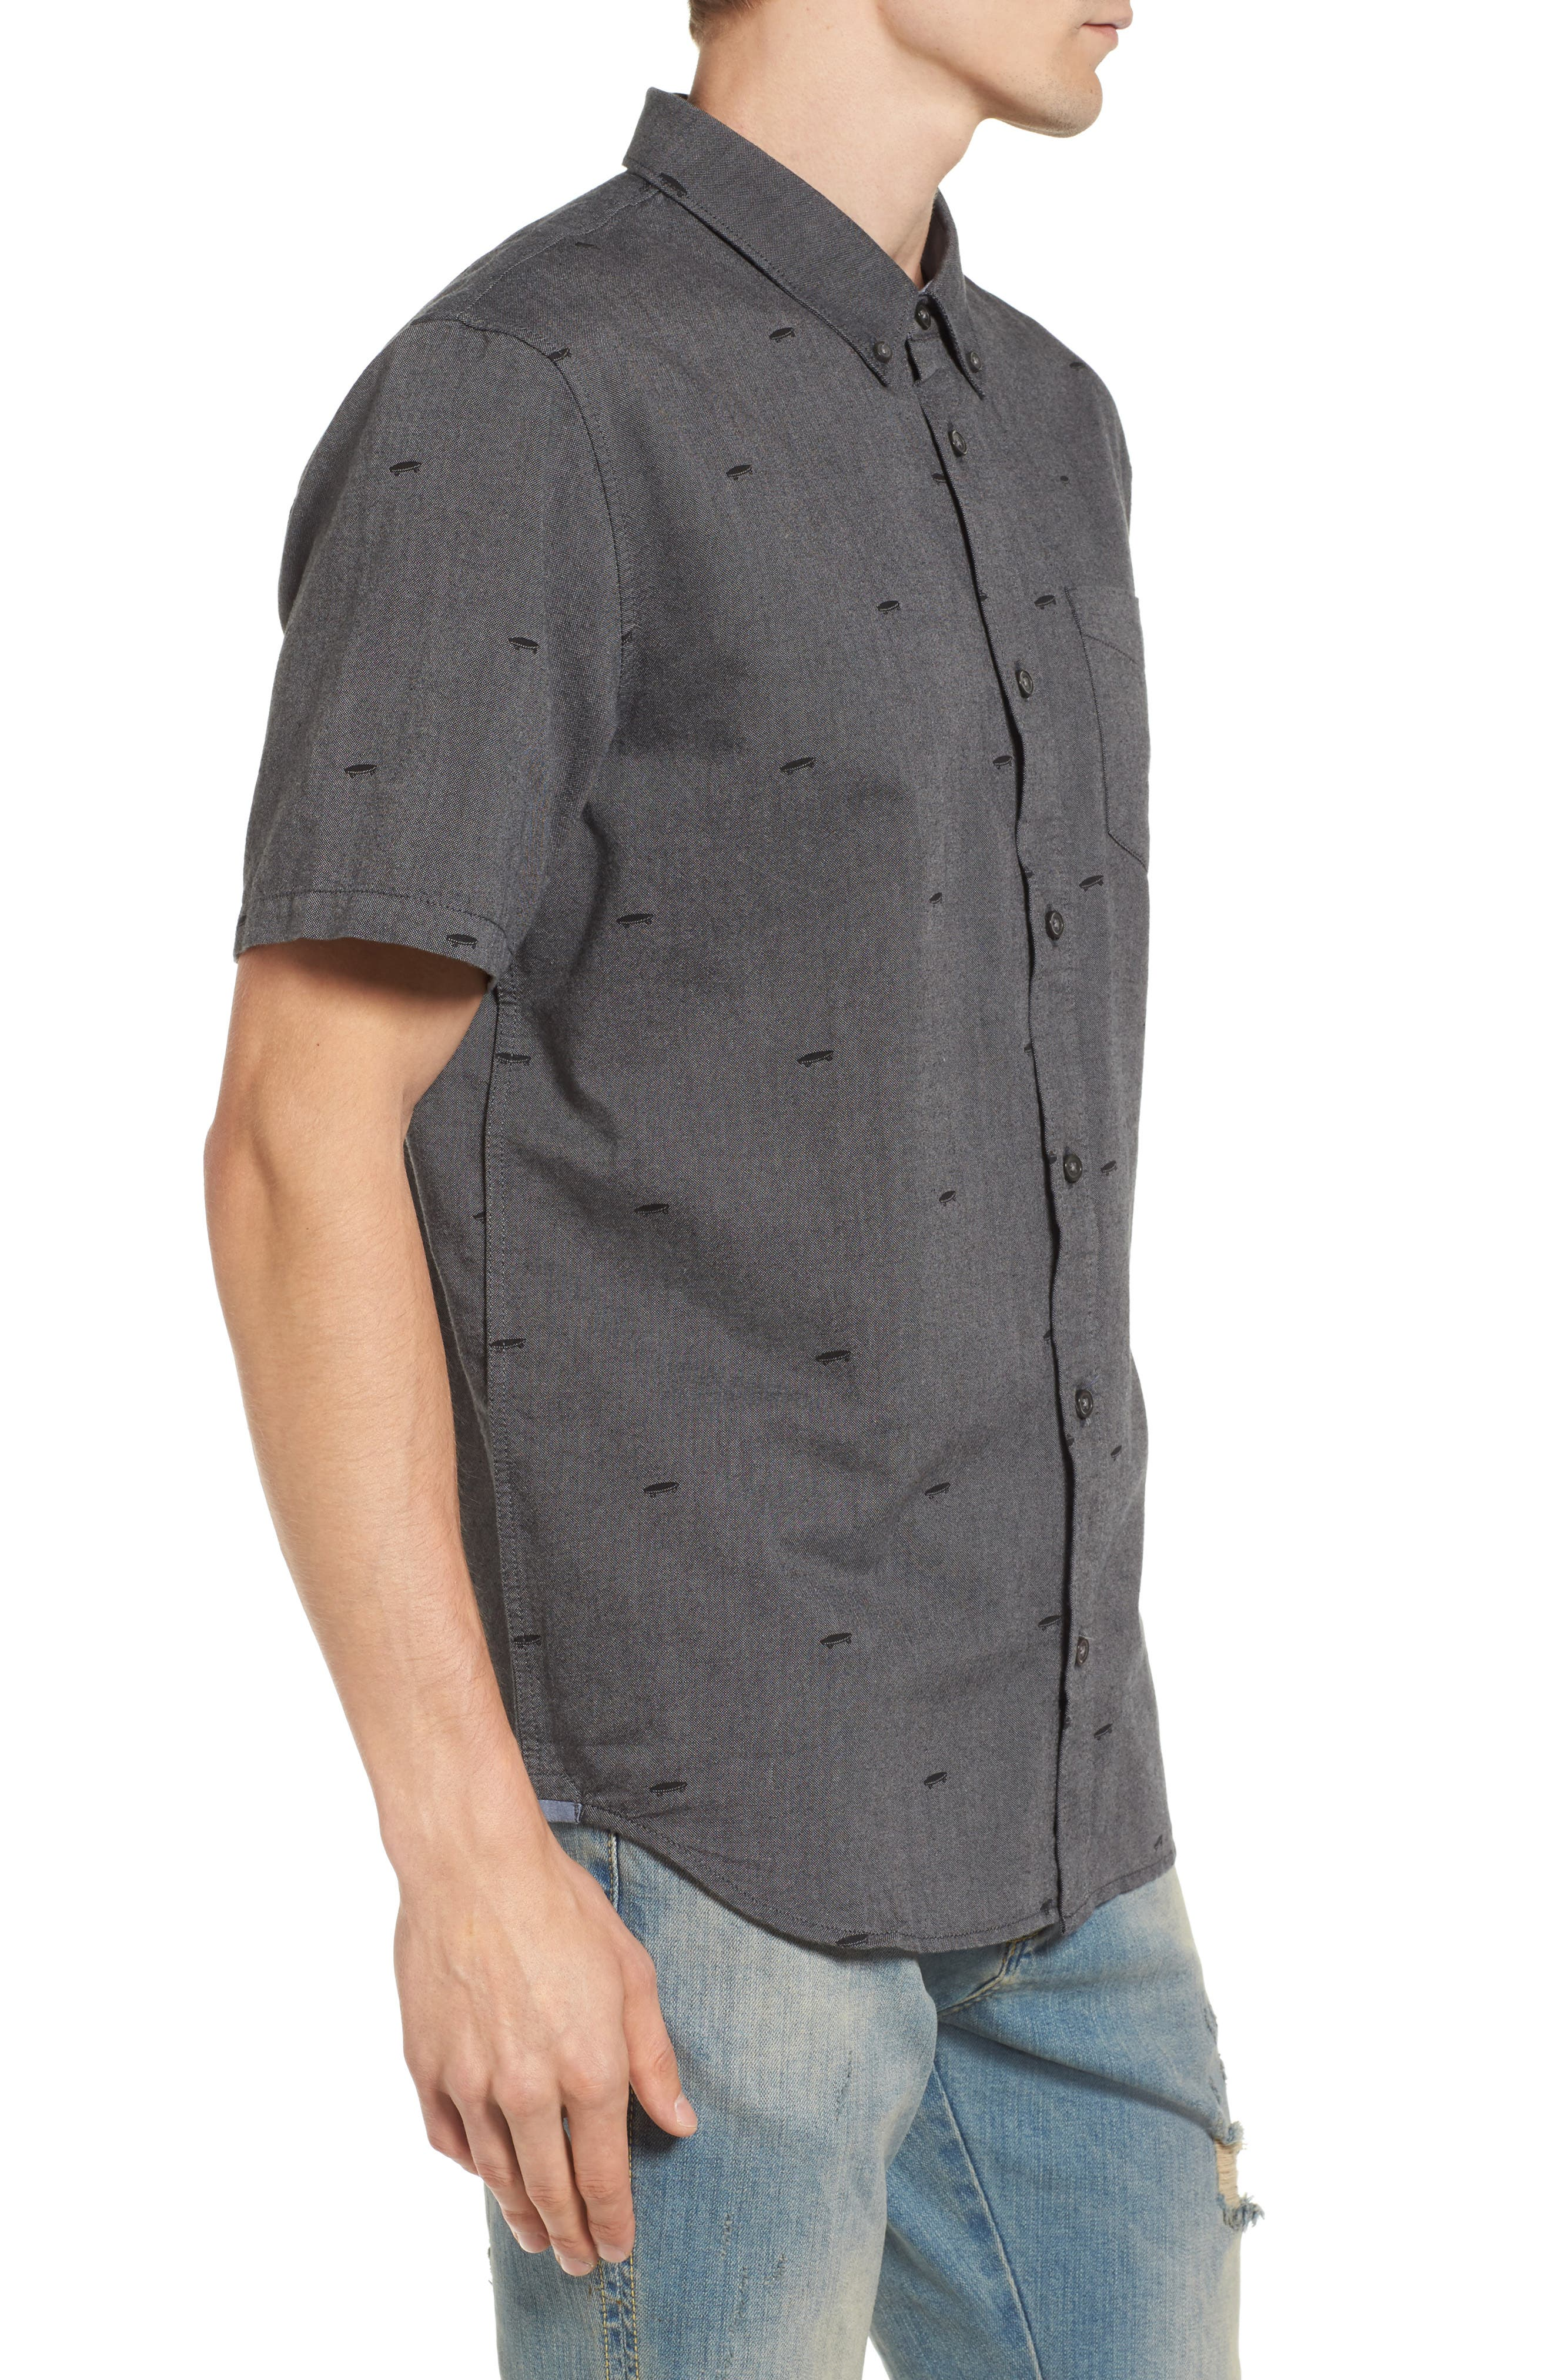 Houser Woven Shirt,                             Alternate thumbnail 3, color,                             Black Salton Ditsy